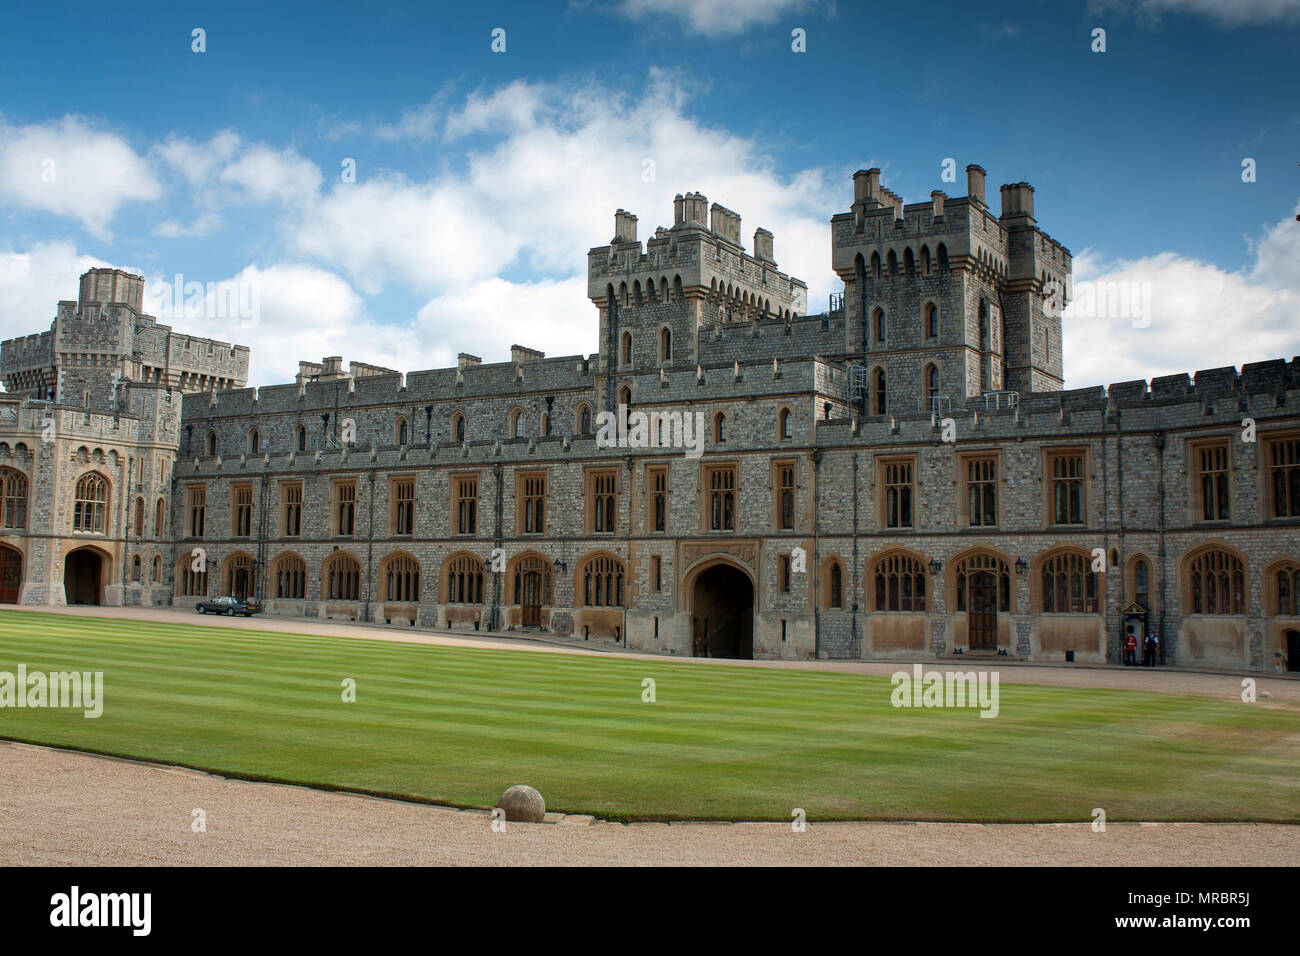 Courtyard of the upper ward in Windsor castle, residence of the british royal family in England, UK. - Stock Image